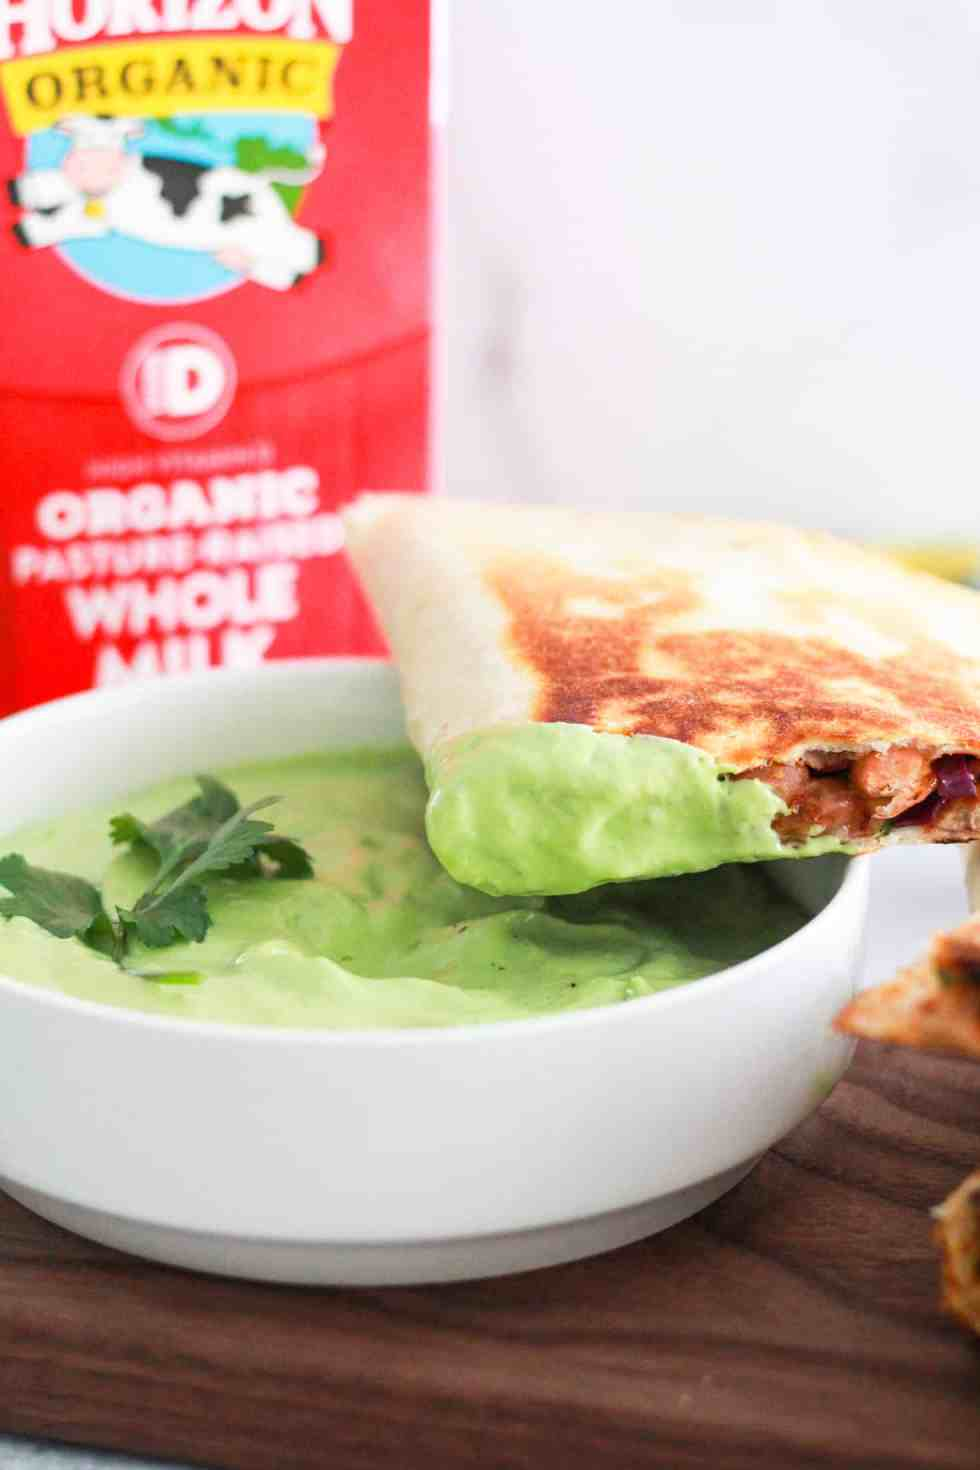 Vegetarian quesadilla dipped in green sauce with carton of Horizon Organic milk behind it.